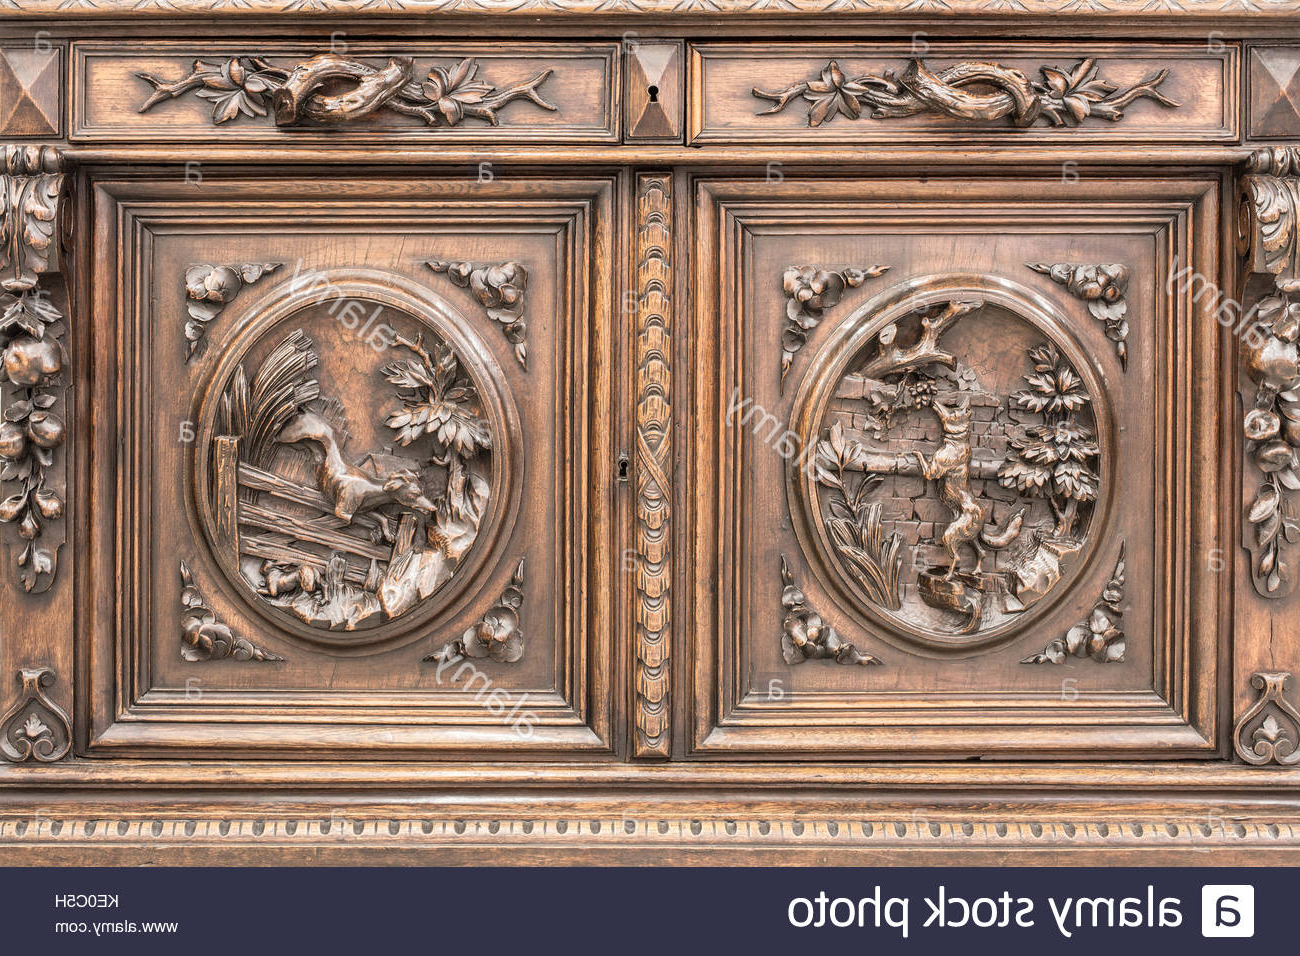 Mid Burnt Oak 71 Inch Sideboards In Fashionable Oak Carving Stock Photos & Oak Carving Stock Images – Alamy (View 19 of 20)